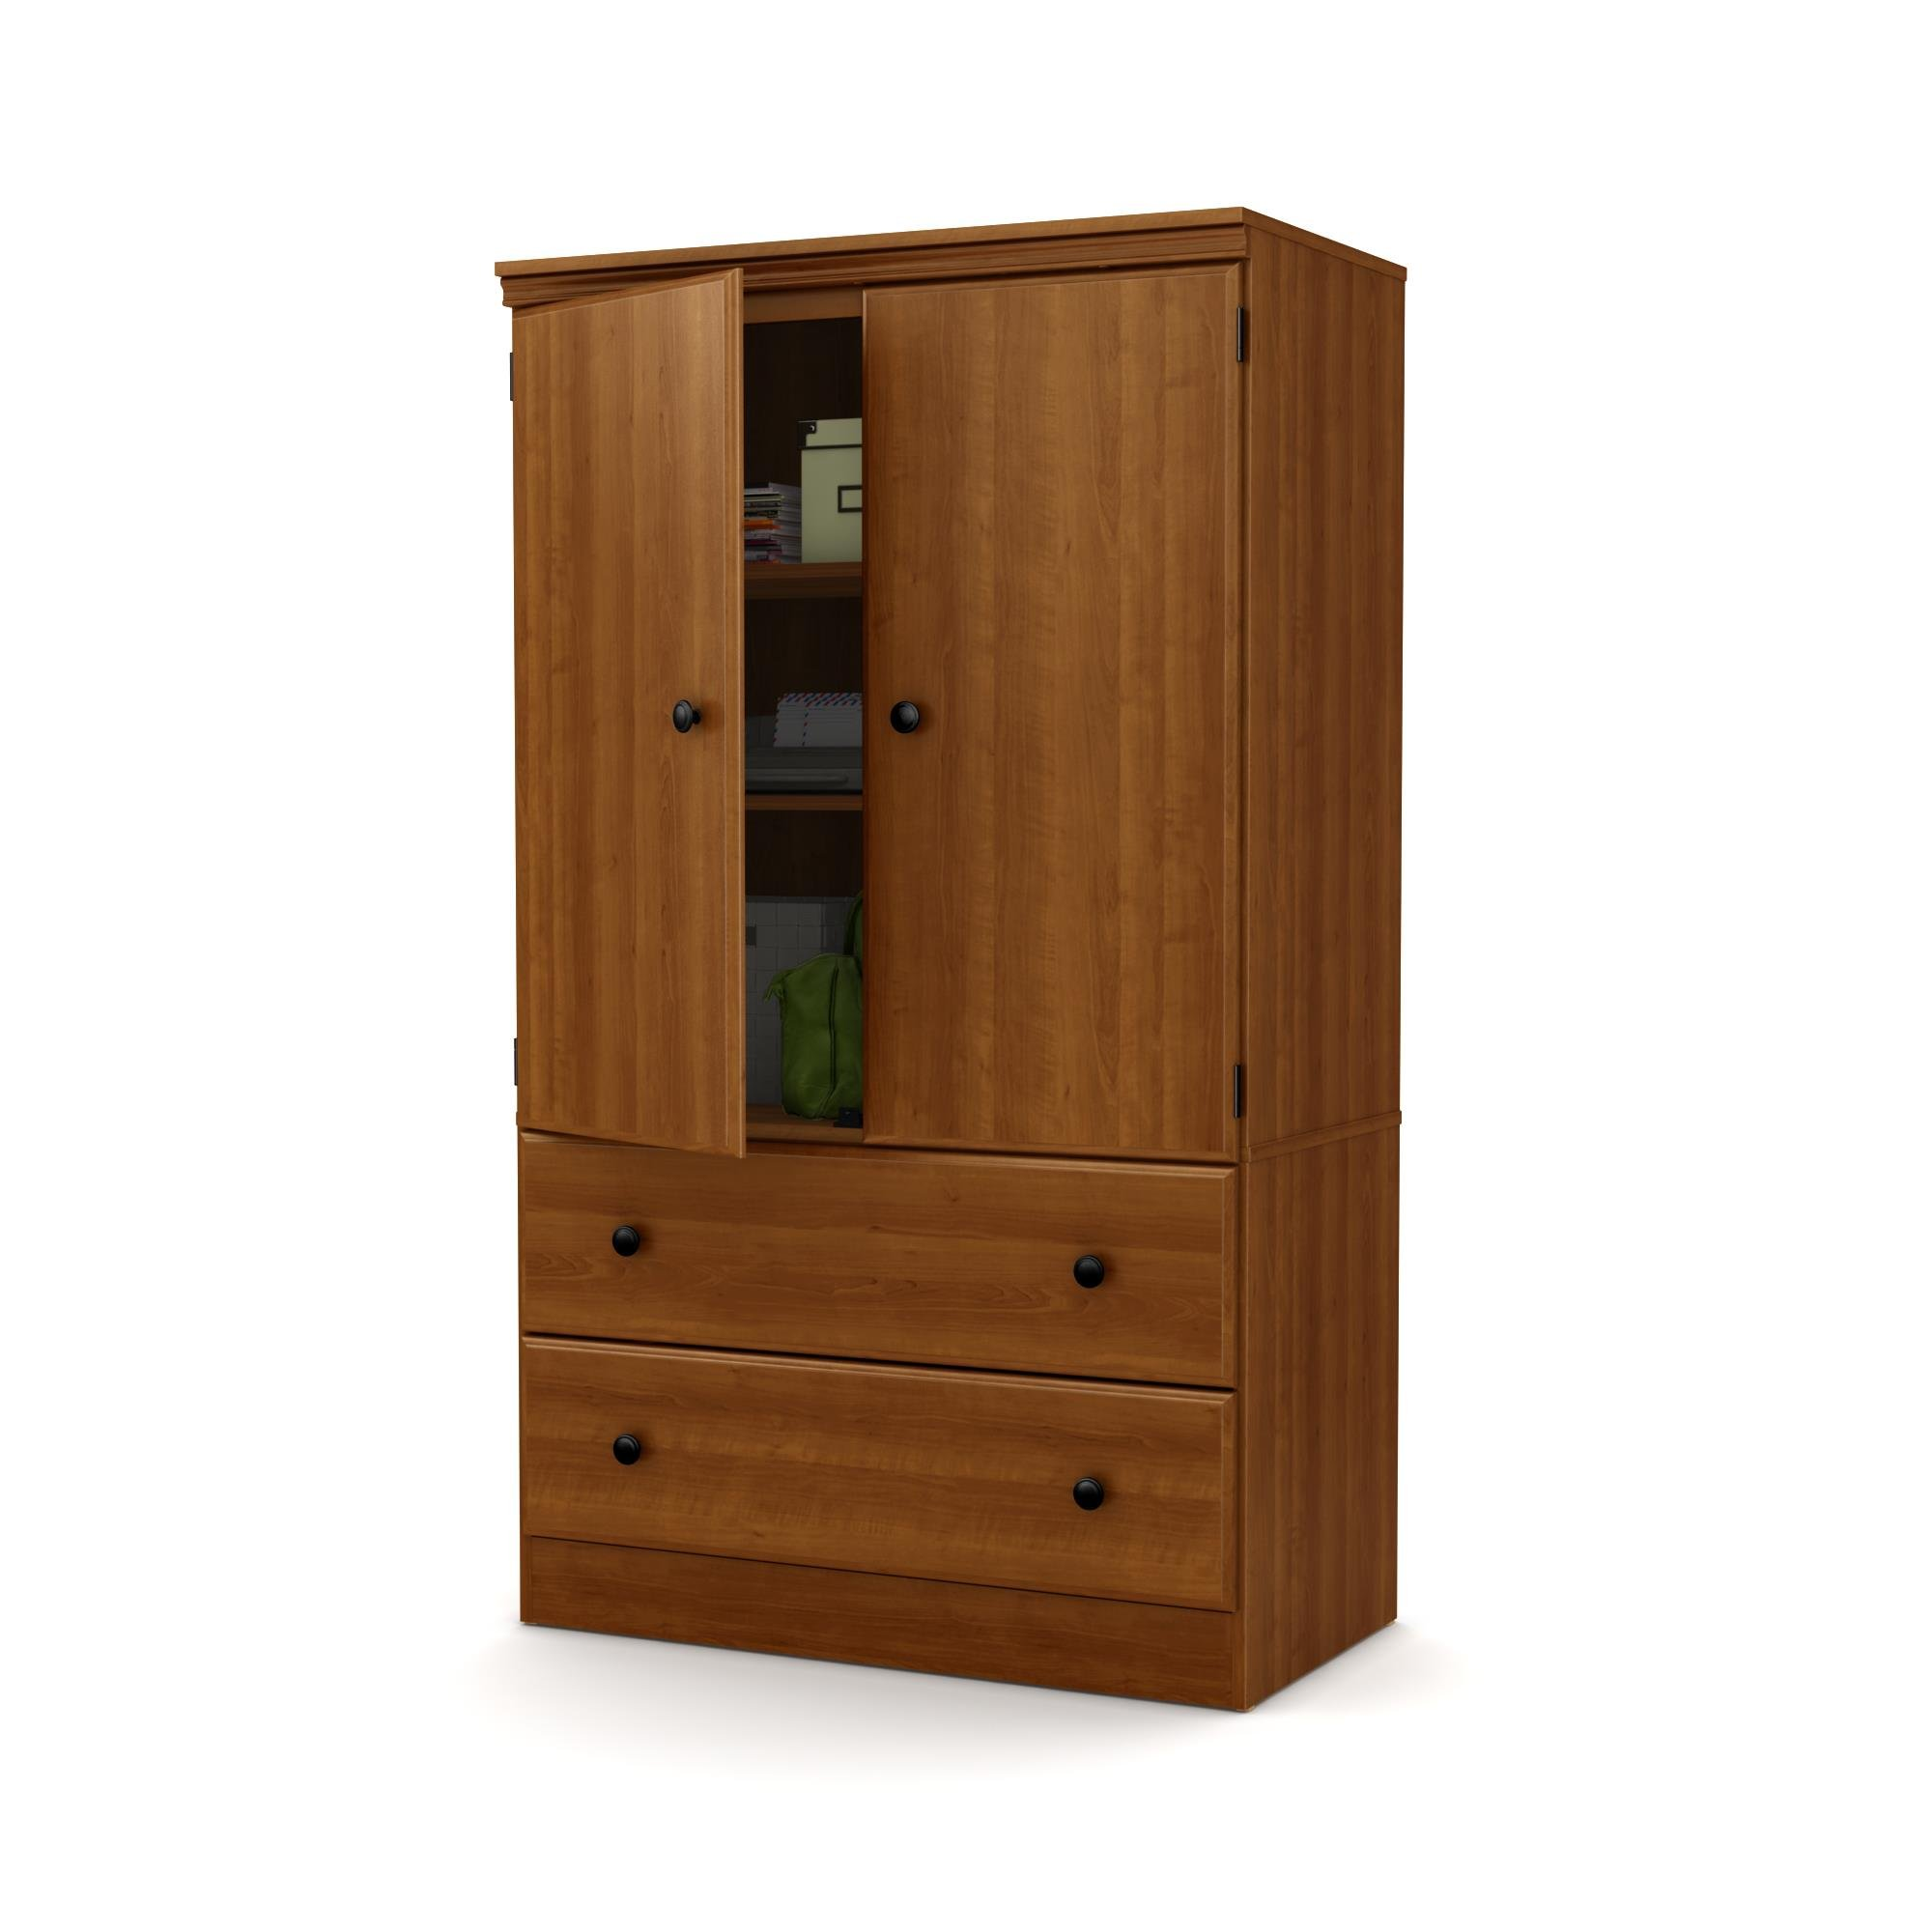 South Shore Morgan 2-Door Armoire with Drawers, Morgan Cherry